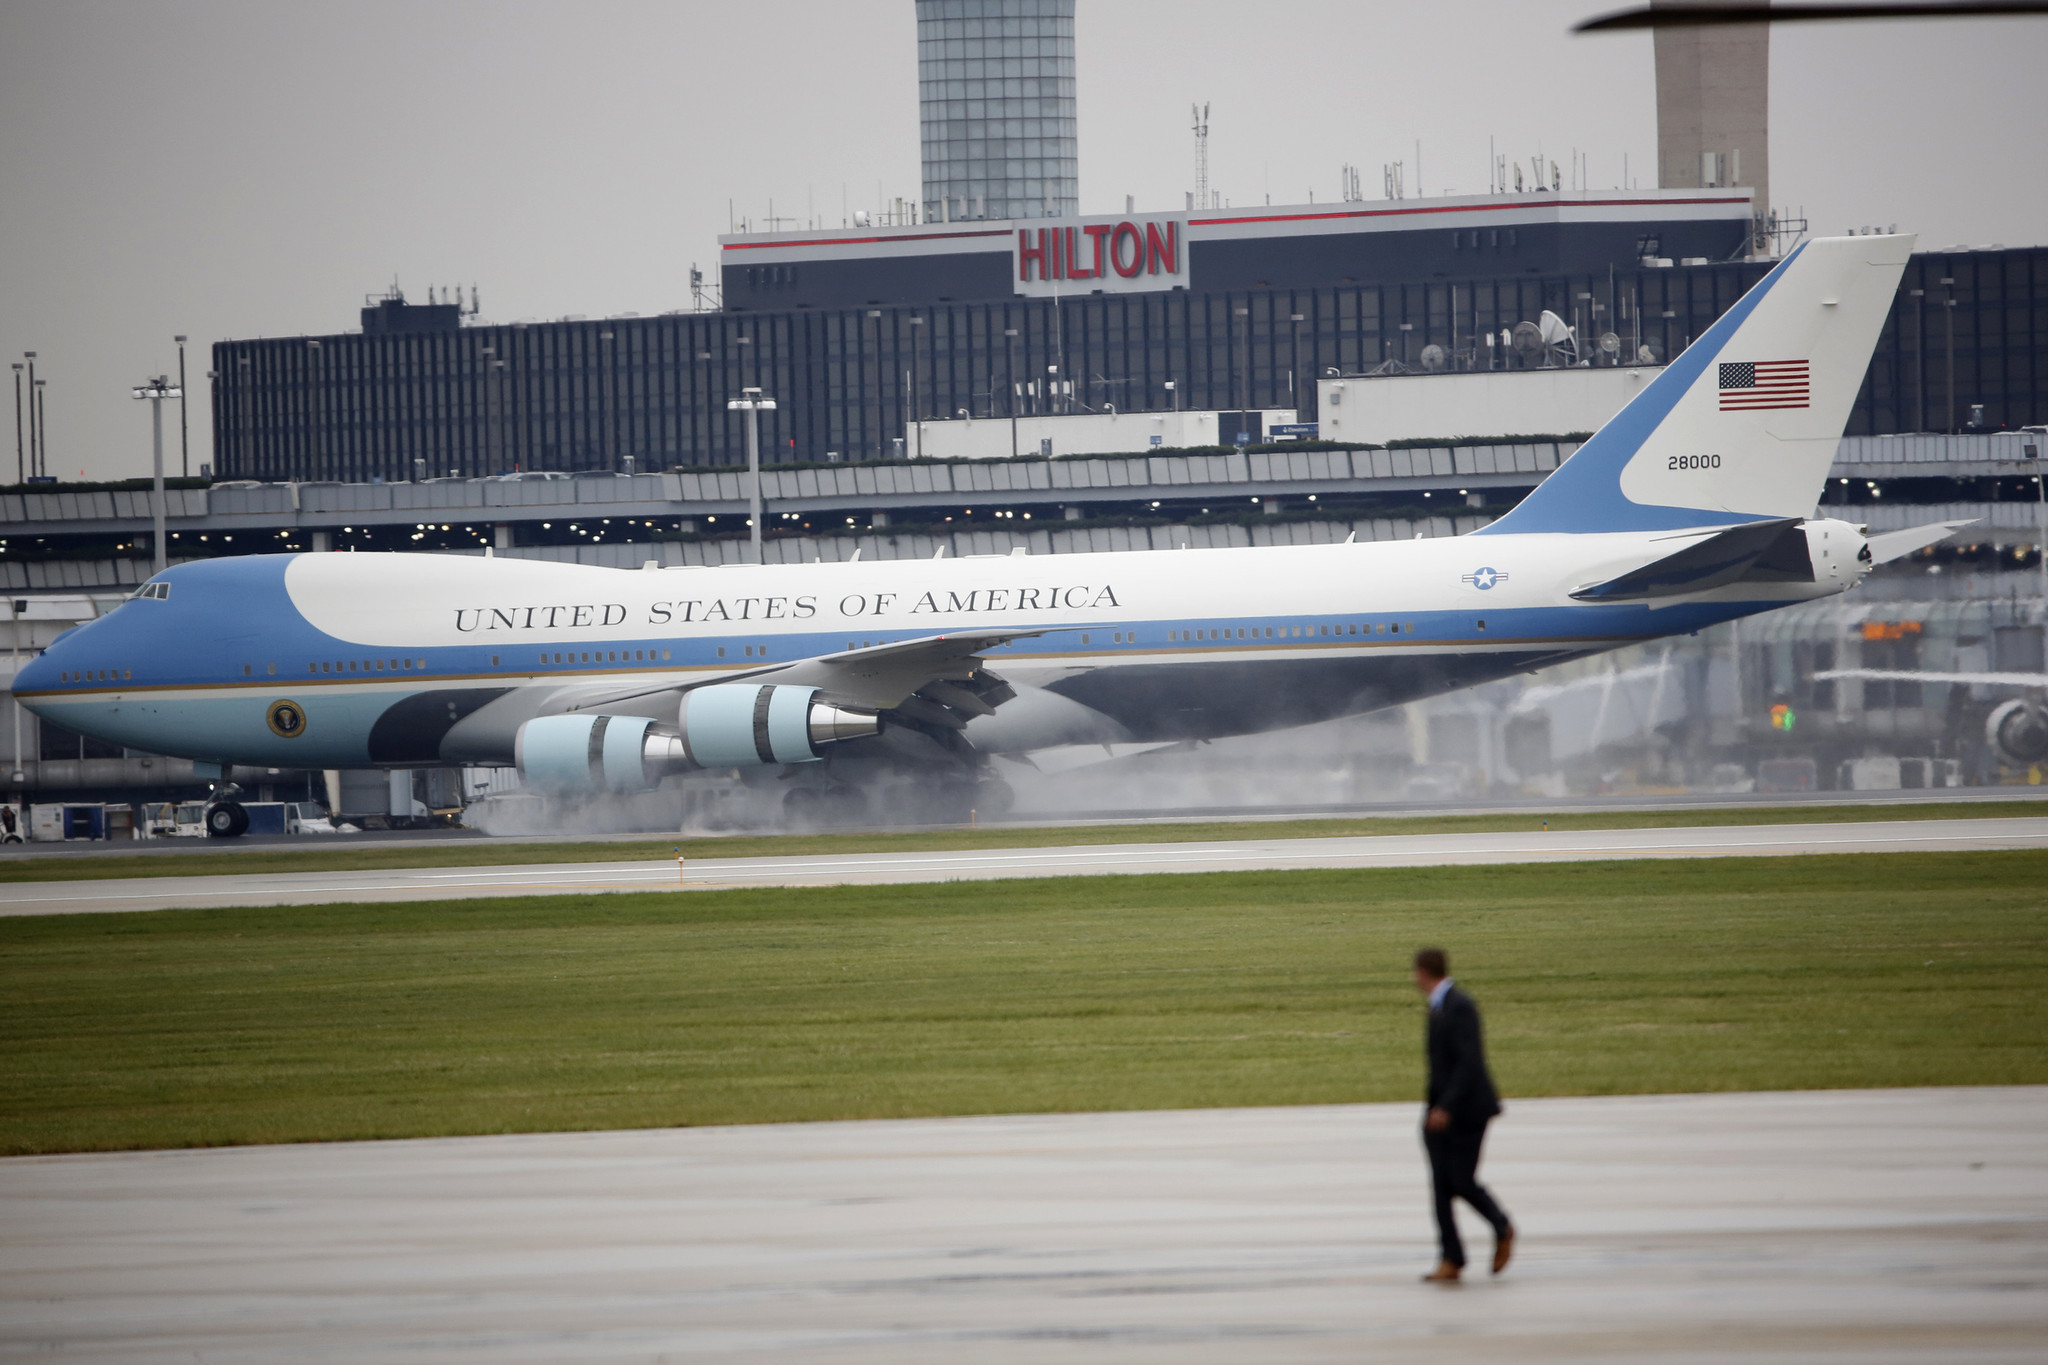 Trump talks on Air Force One cost make progress, Boeing ...